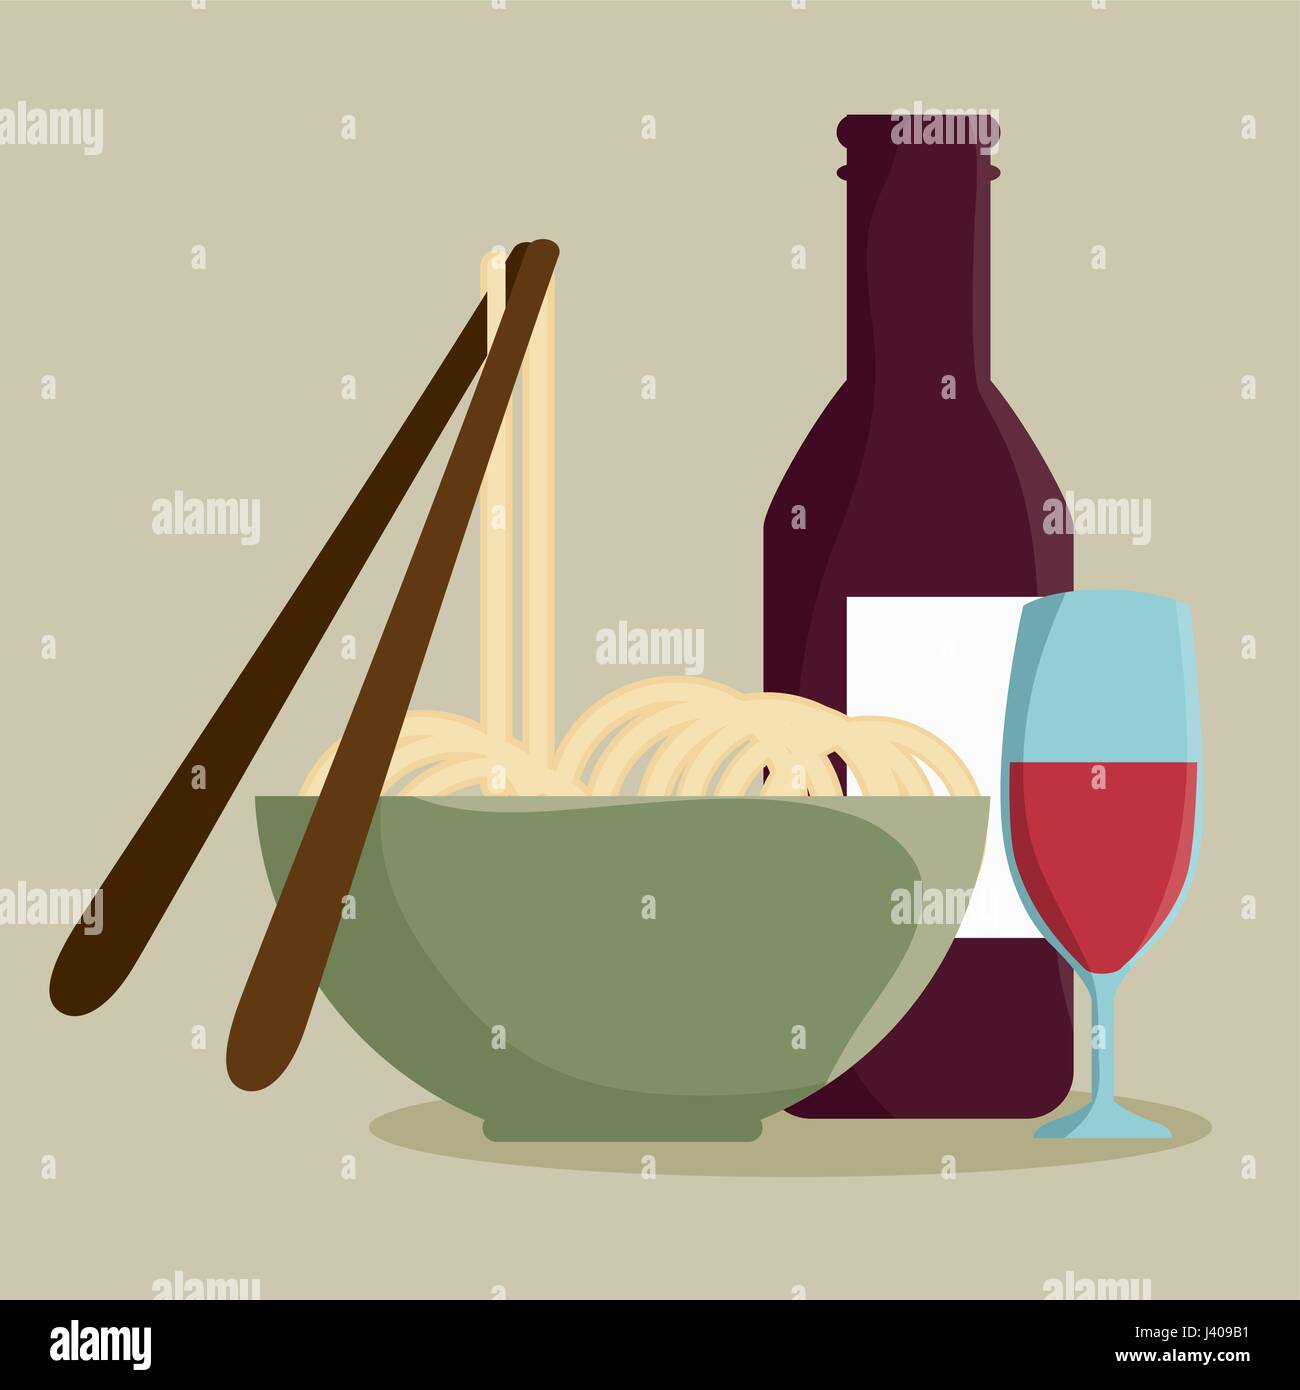 Noodles and wine design. - Stock Vector